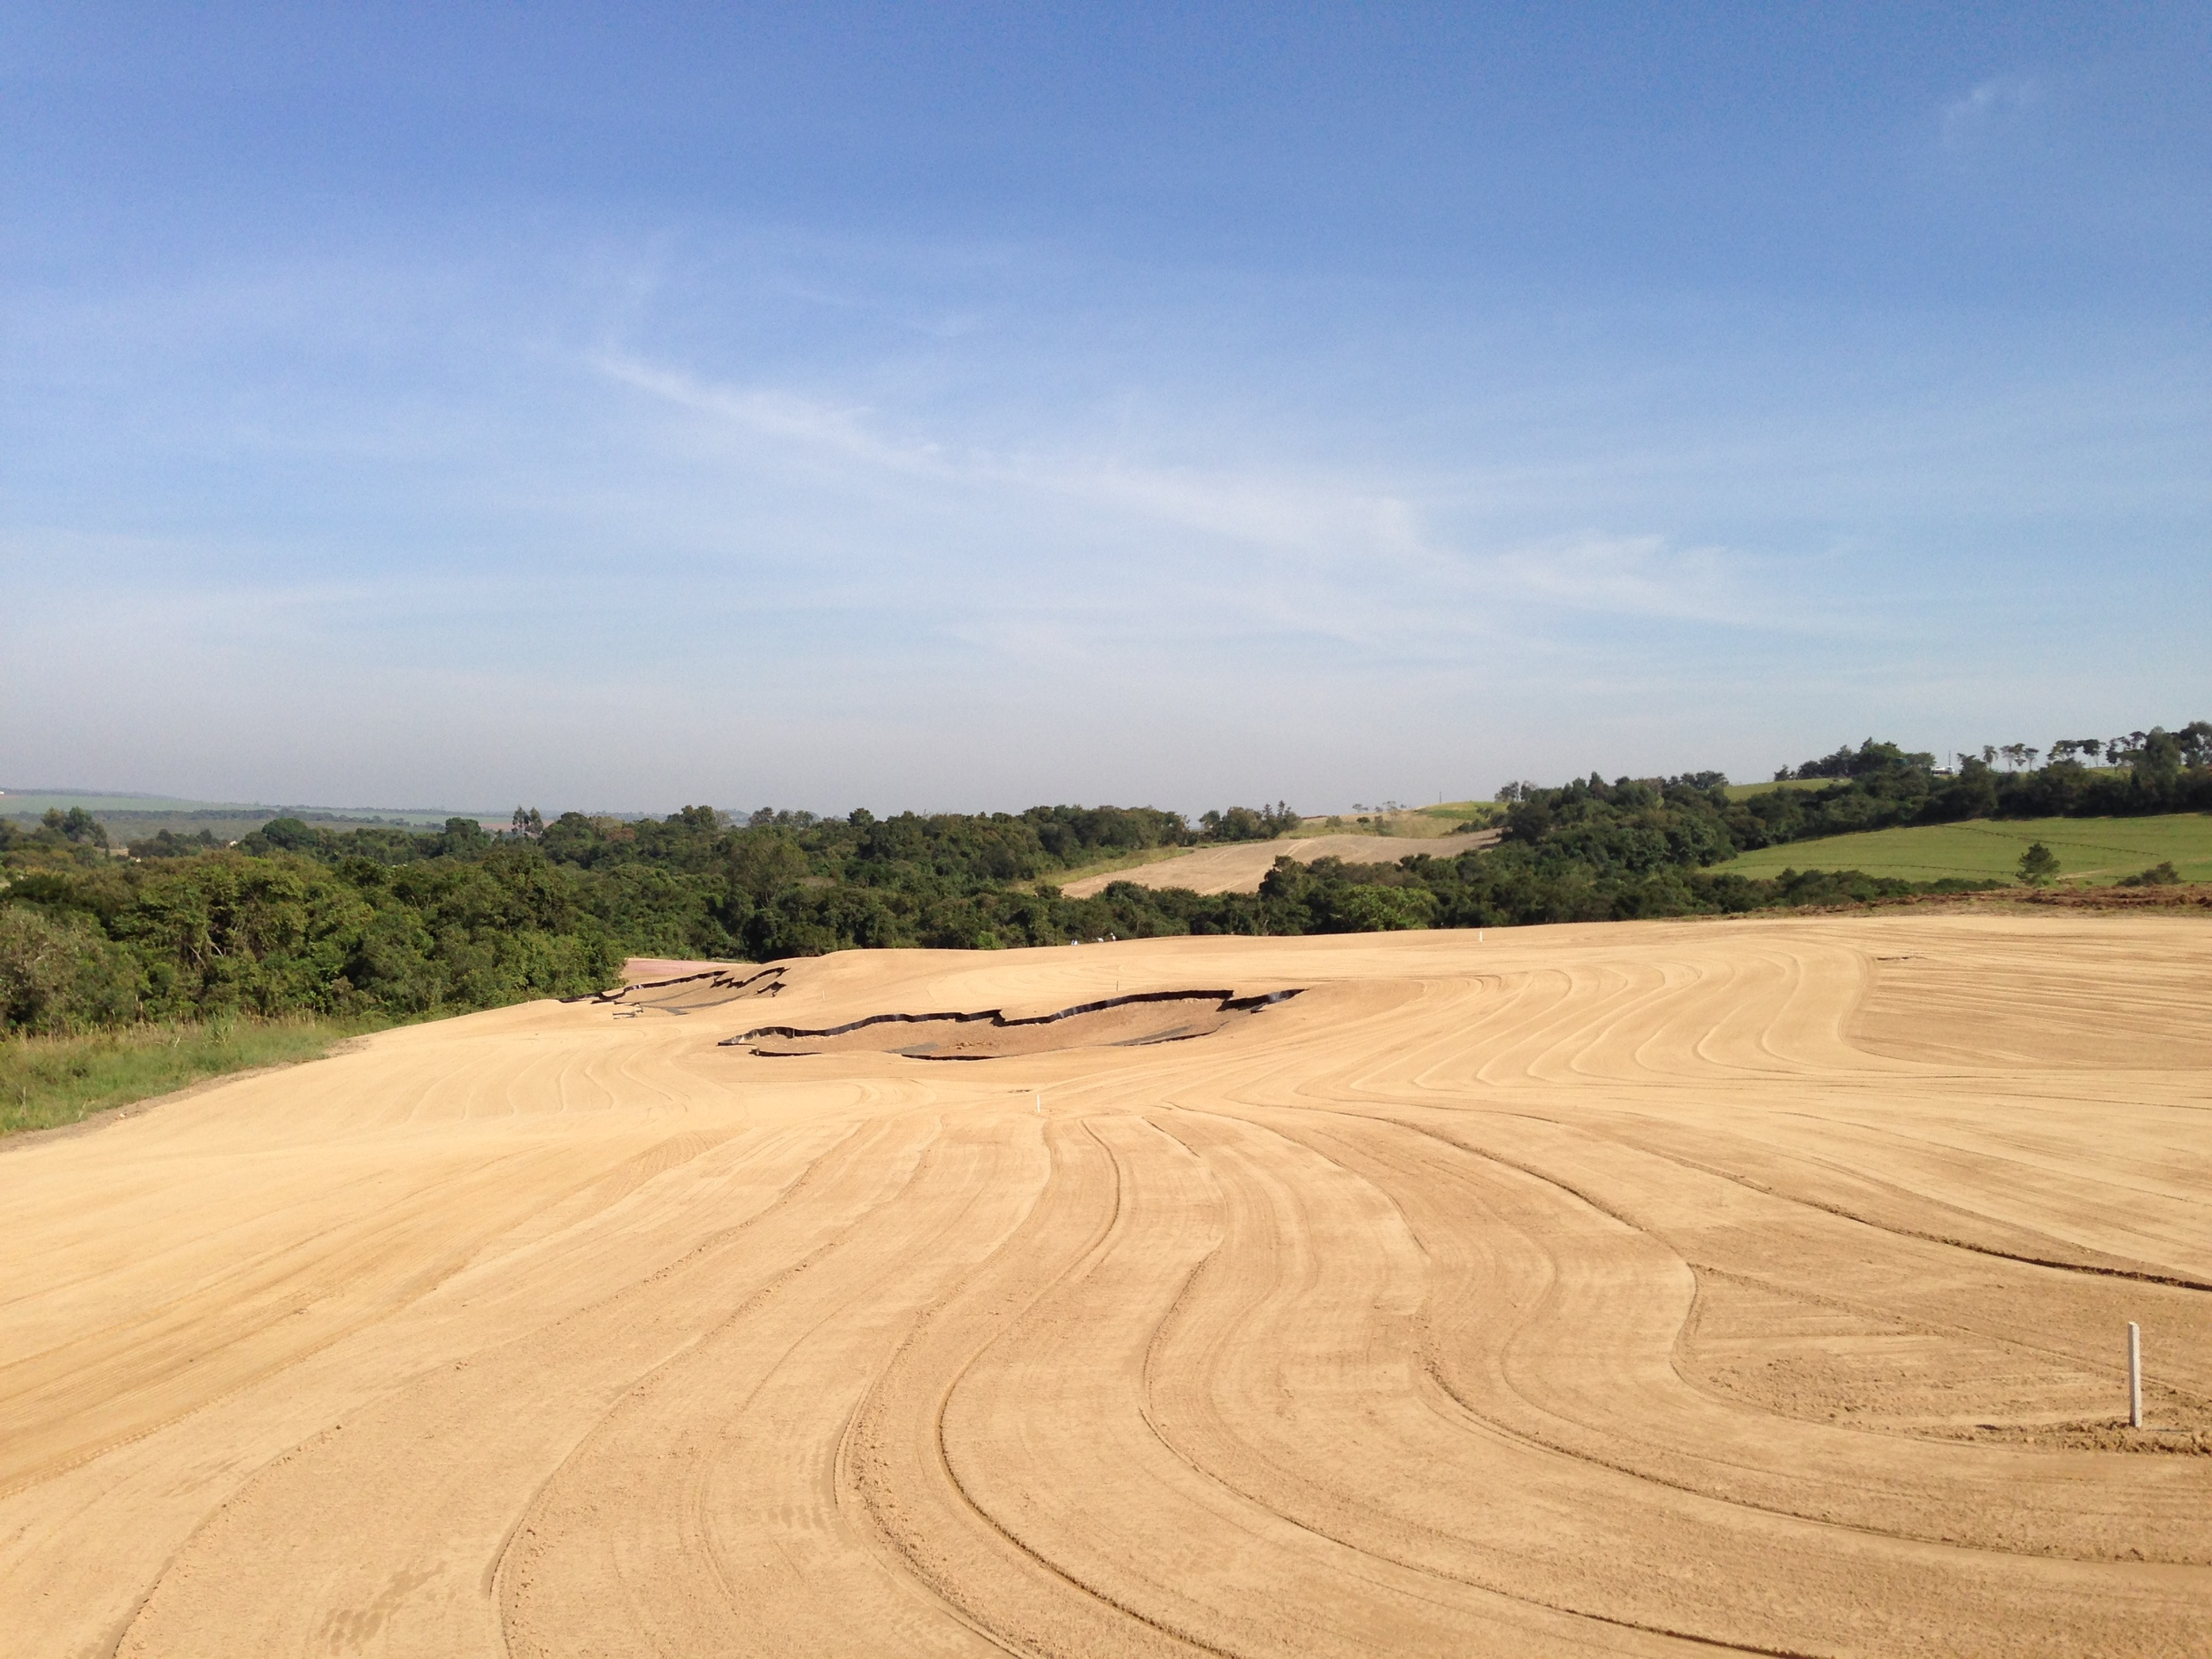 "Hole 15 fairway after edits.  The foreground bunker was extended left and made to look like it is sweeping more down the hillside.  The bunker in the far ground had the squiggly-ness of the low left side both toned down and outer points adjusted to create a ""connect the dots"" curve."